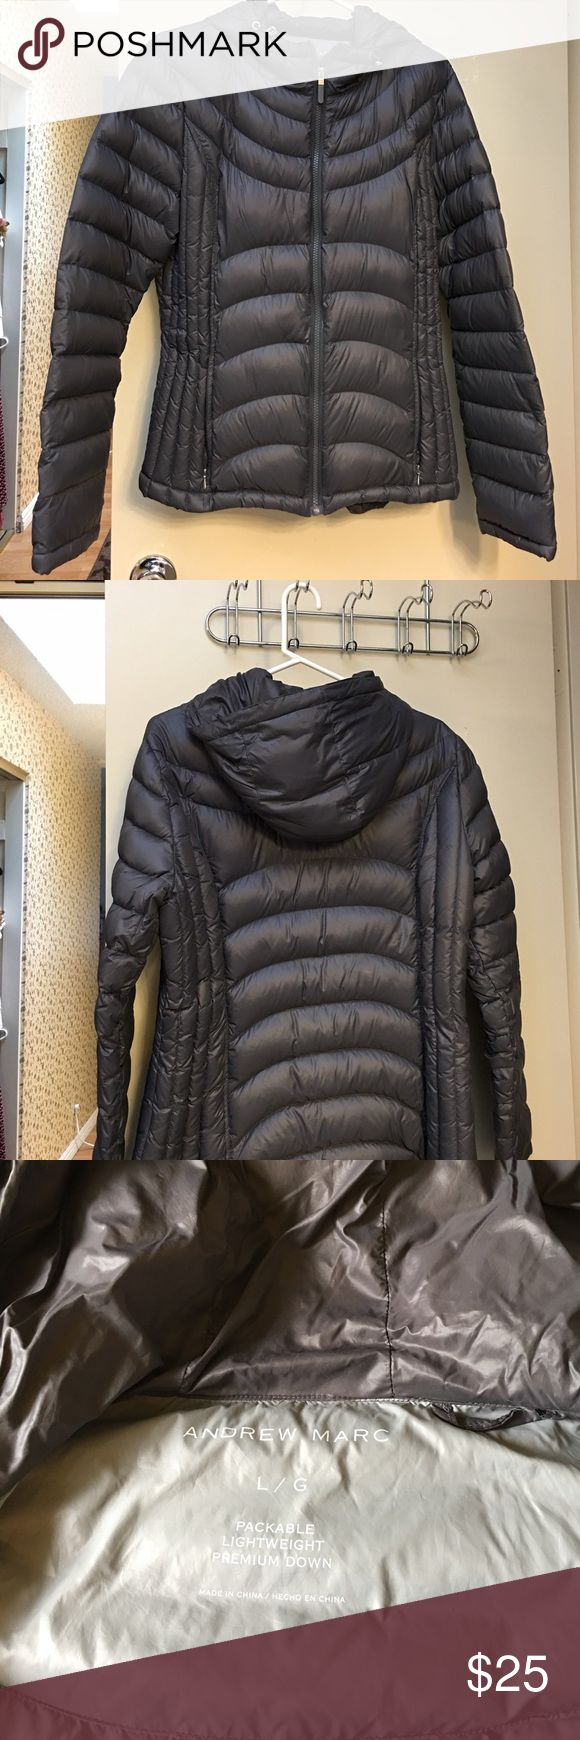 Andrew Marc hooded packable down jacket Andrew Marc hooded packable lightweight down jacket, worn a couple times, almost new condition, grey color Andrew Marc Jackets & Coats Puffers